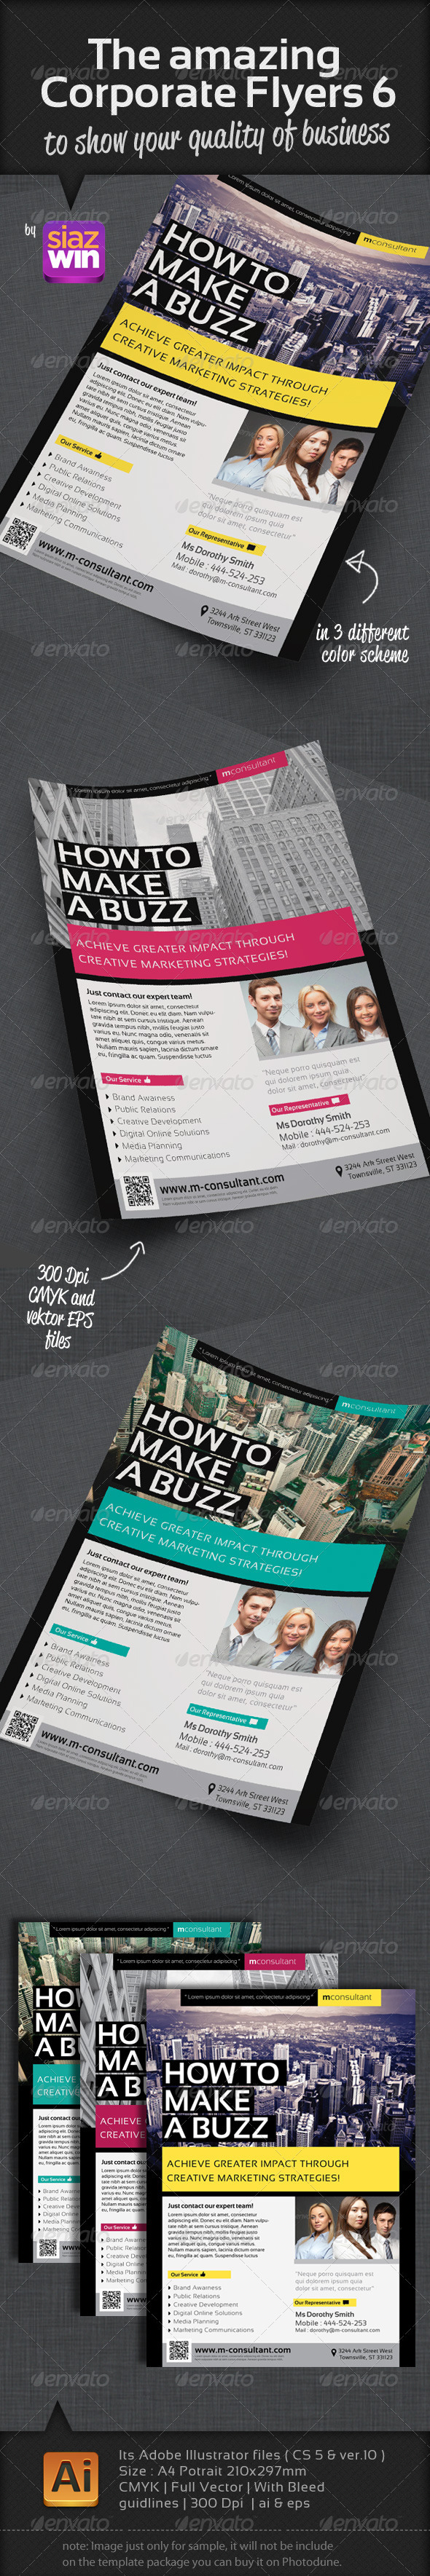 GraphicRiver The Amazing Corporate Flyers 6 2894725